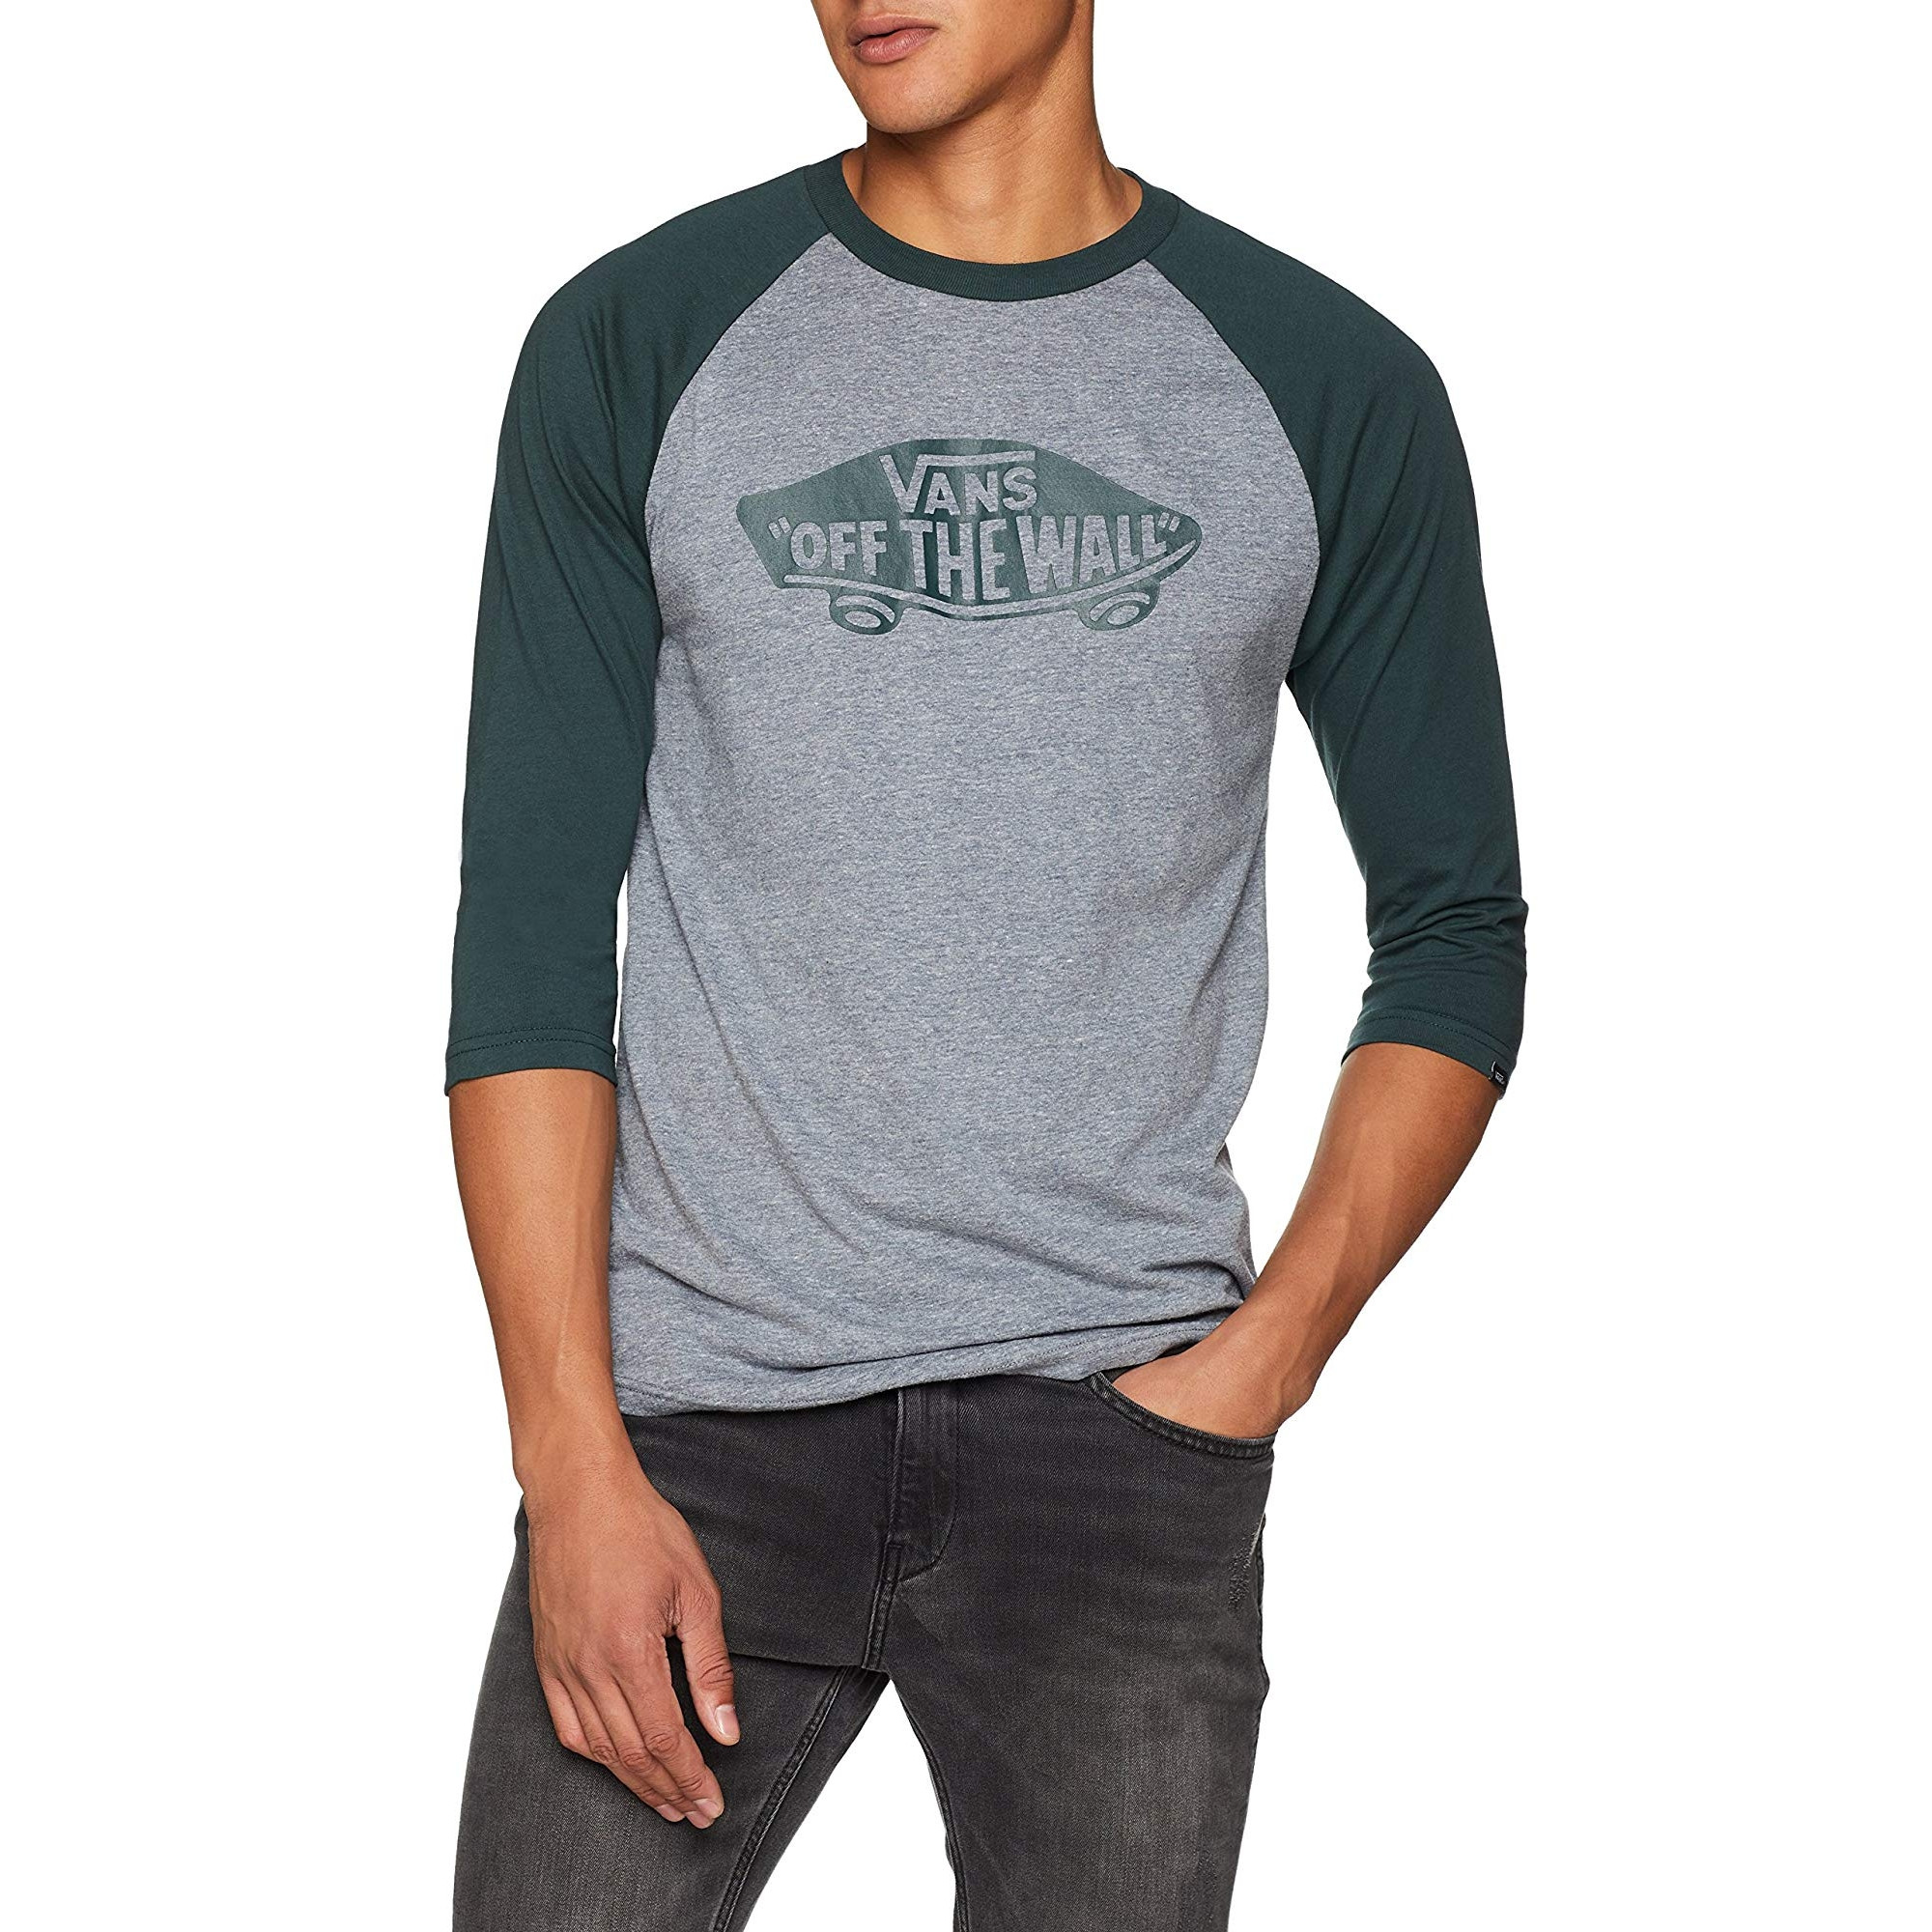 a7529affbc Vans Crew Neck Print Raglan T-shirt Heather Grey